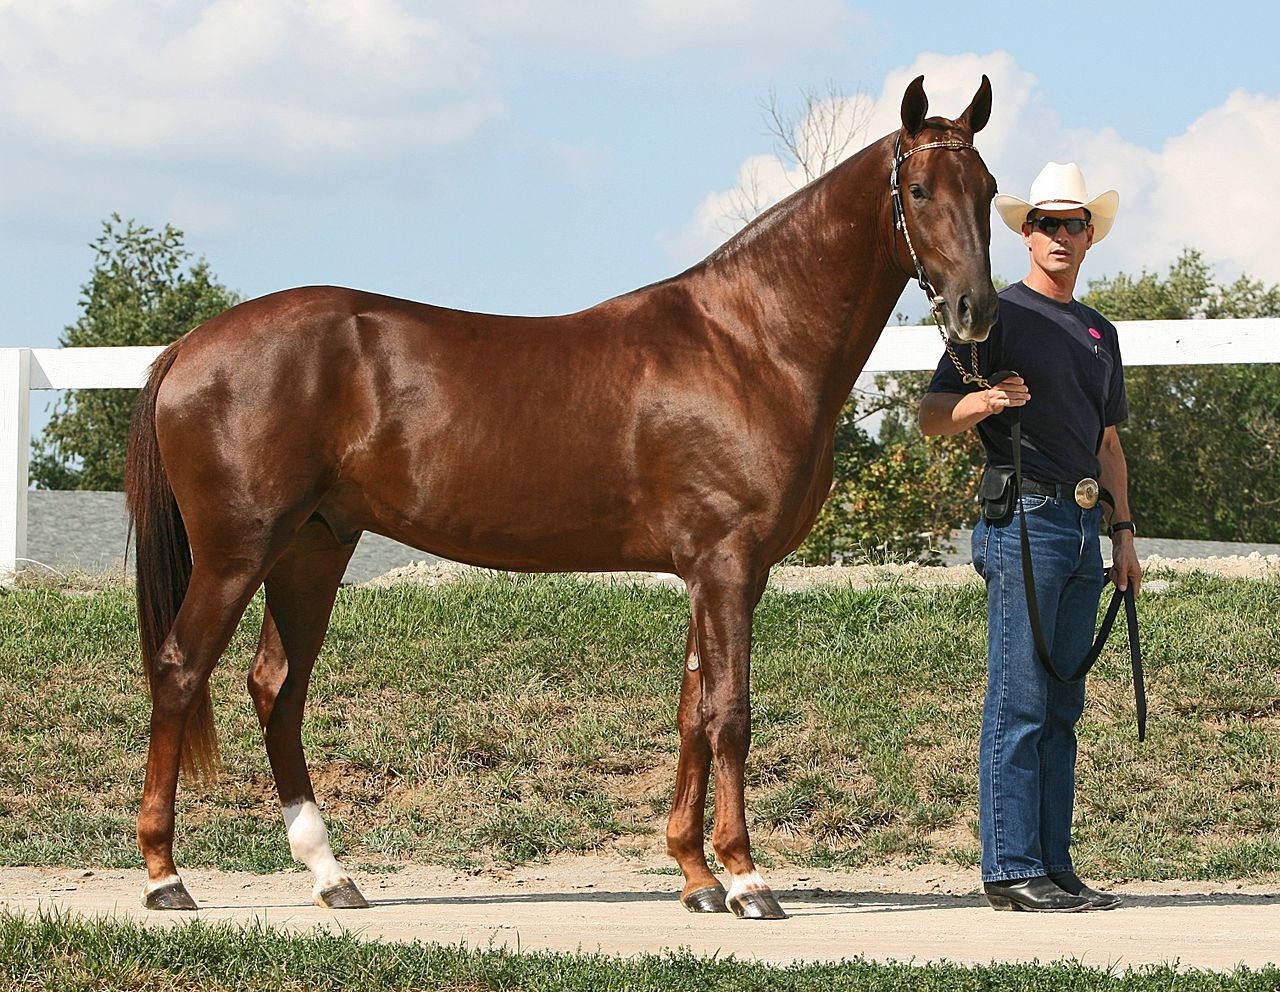 Showing the Akhal-Teke Horse Breed